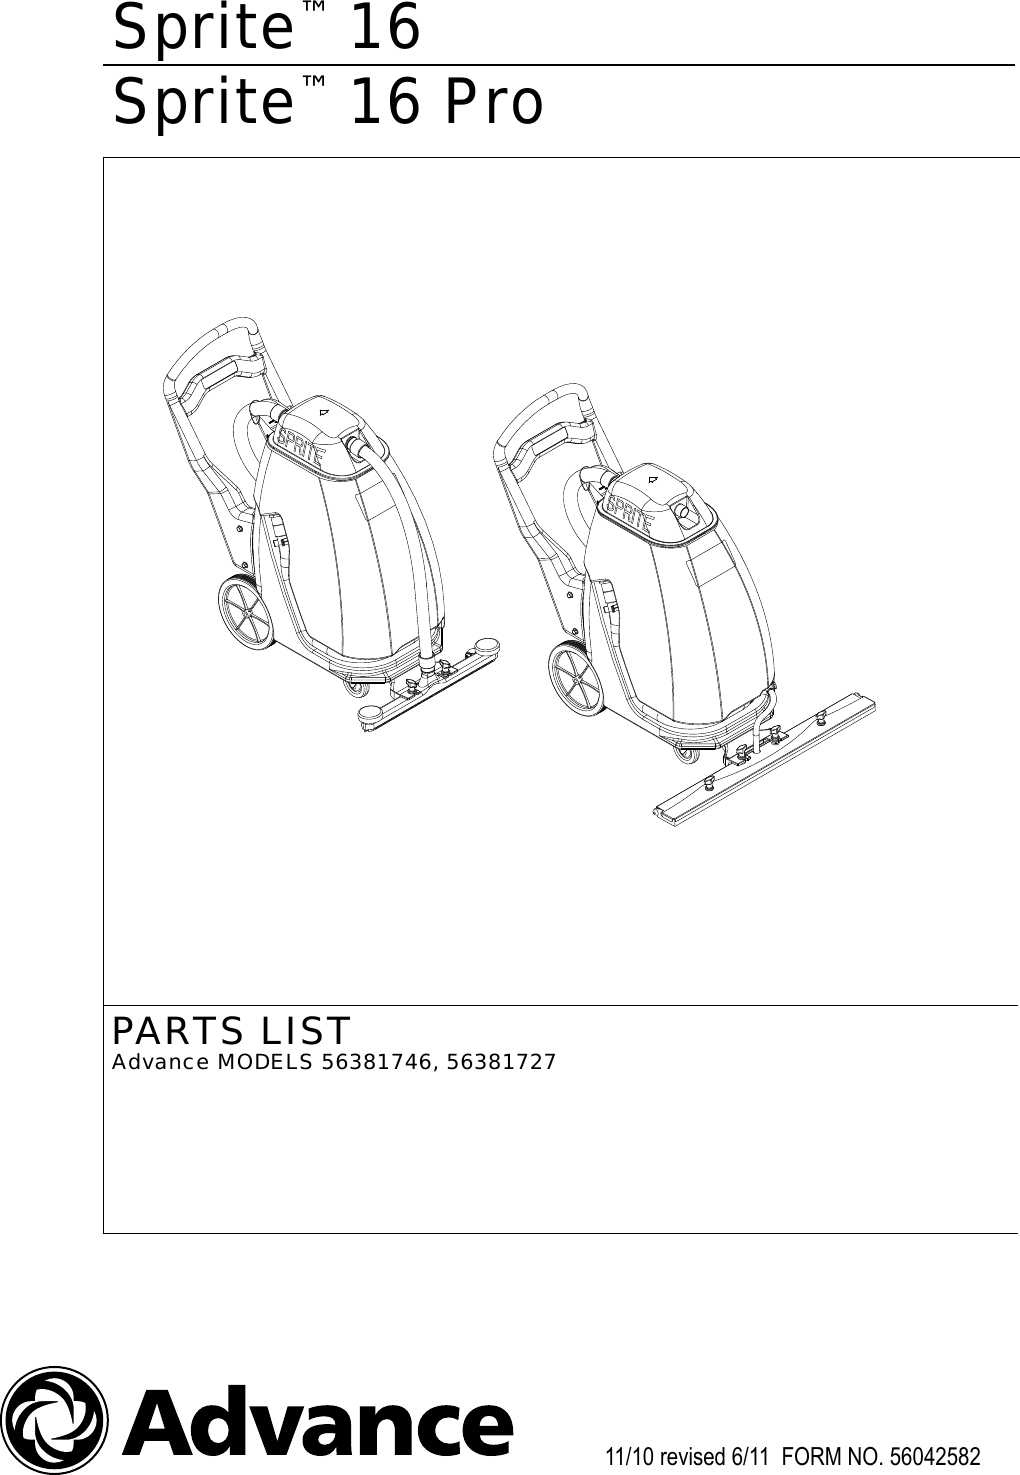 advance sprite 12 parts manual